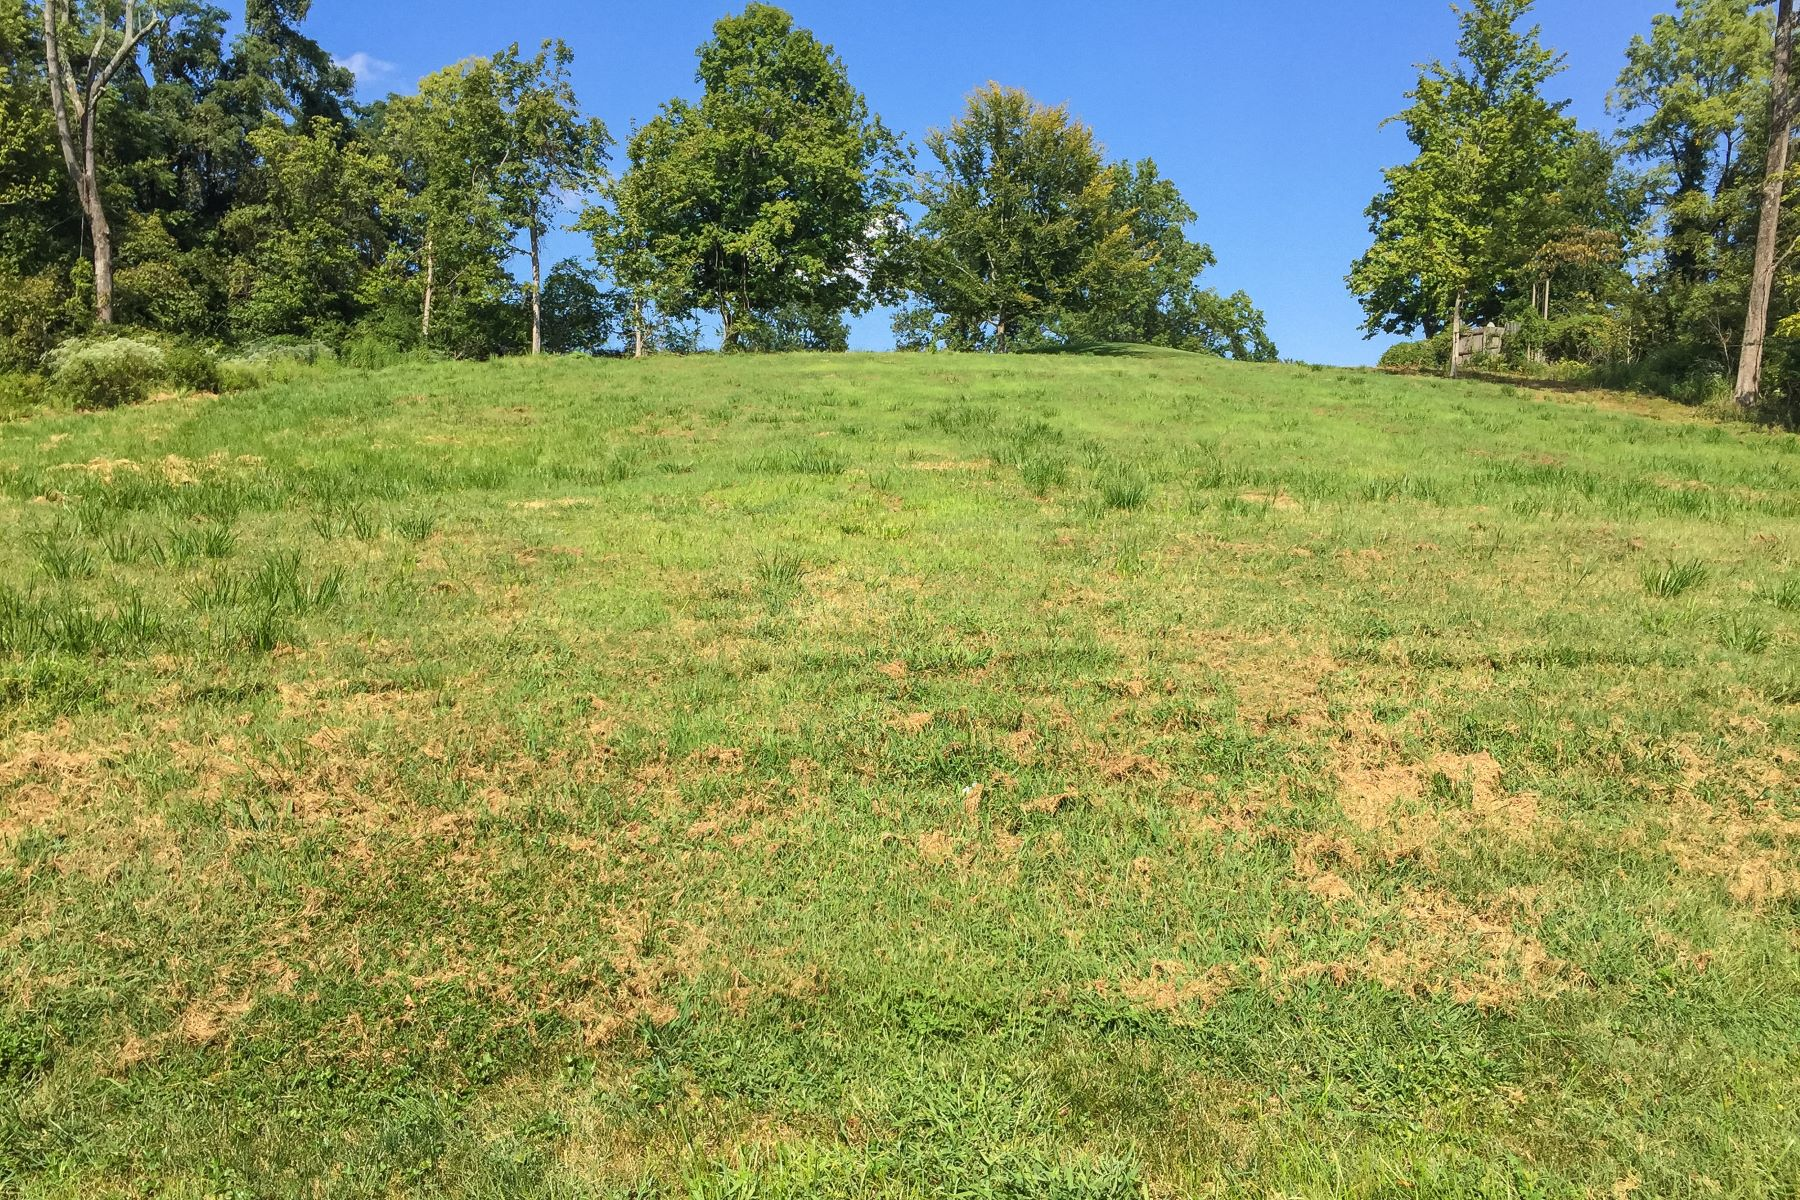 Land for Sale at 531 Country Lane 531 Country Lane Louisville, Kentucky 40207 United States